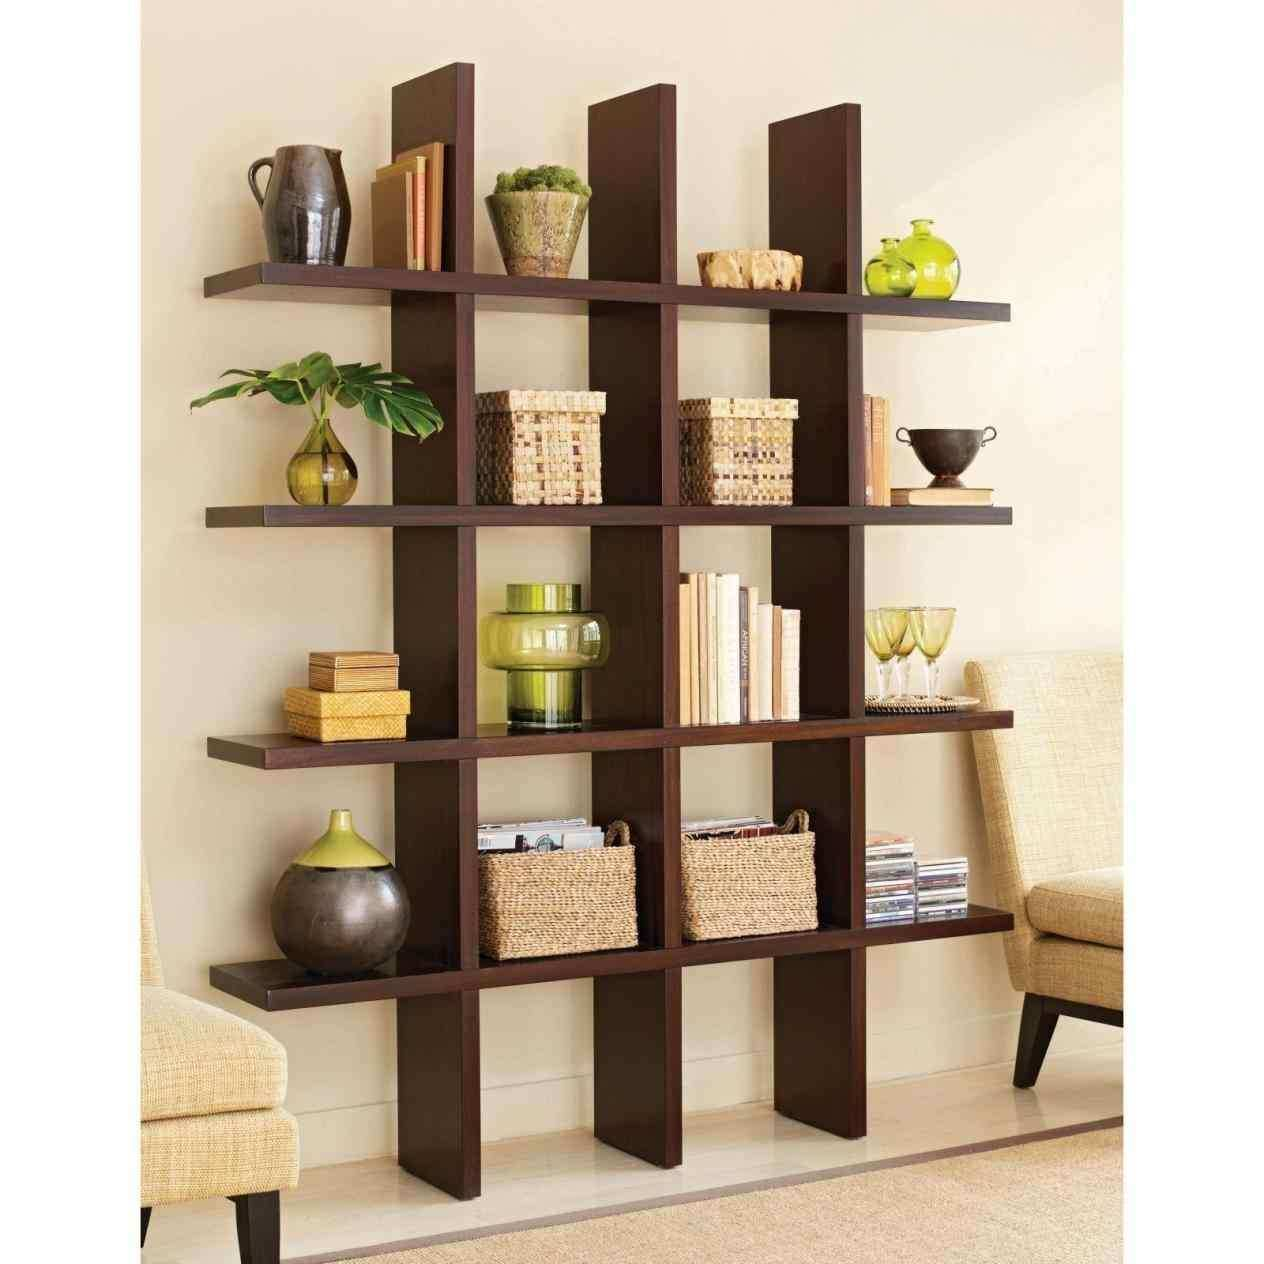 Plush Living Room Wall Decor Ideas Pinterest 25 Wall Shelves Ideas Pinterest Living Living Room Wall Decor Ideas Pinterest Living Room Wall Shelving Ideas Living Room Wall Shelf Ideas interior Living Room Wall Shelves Ideas